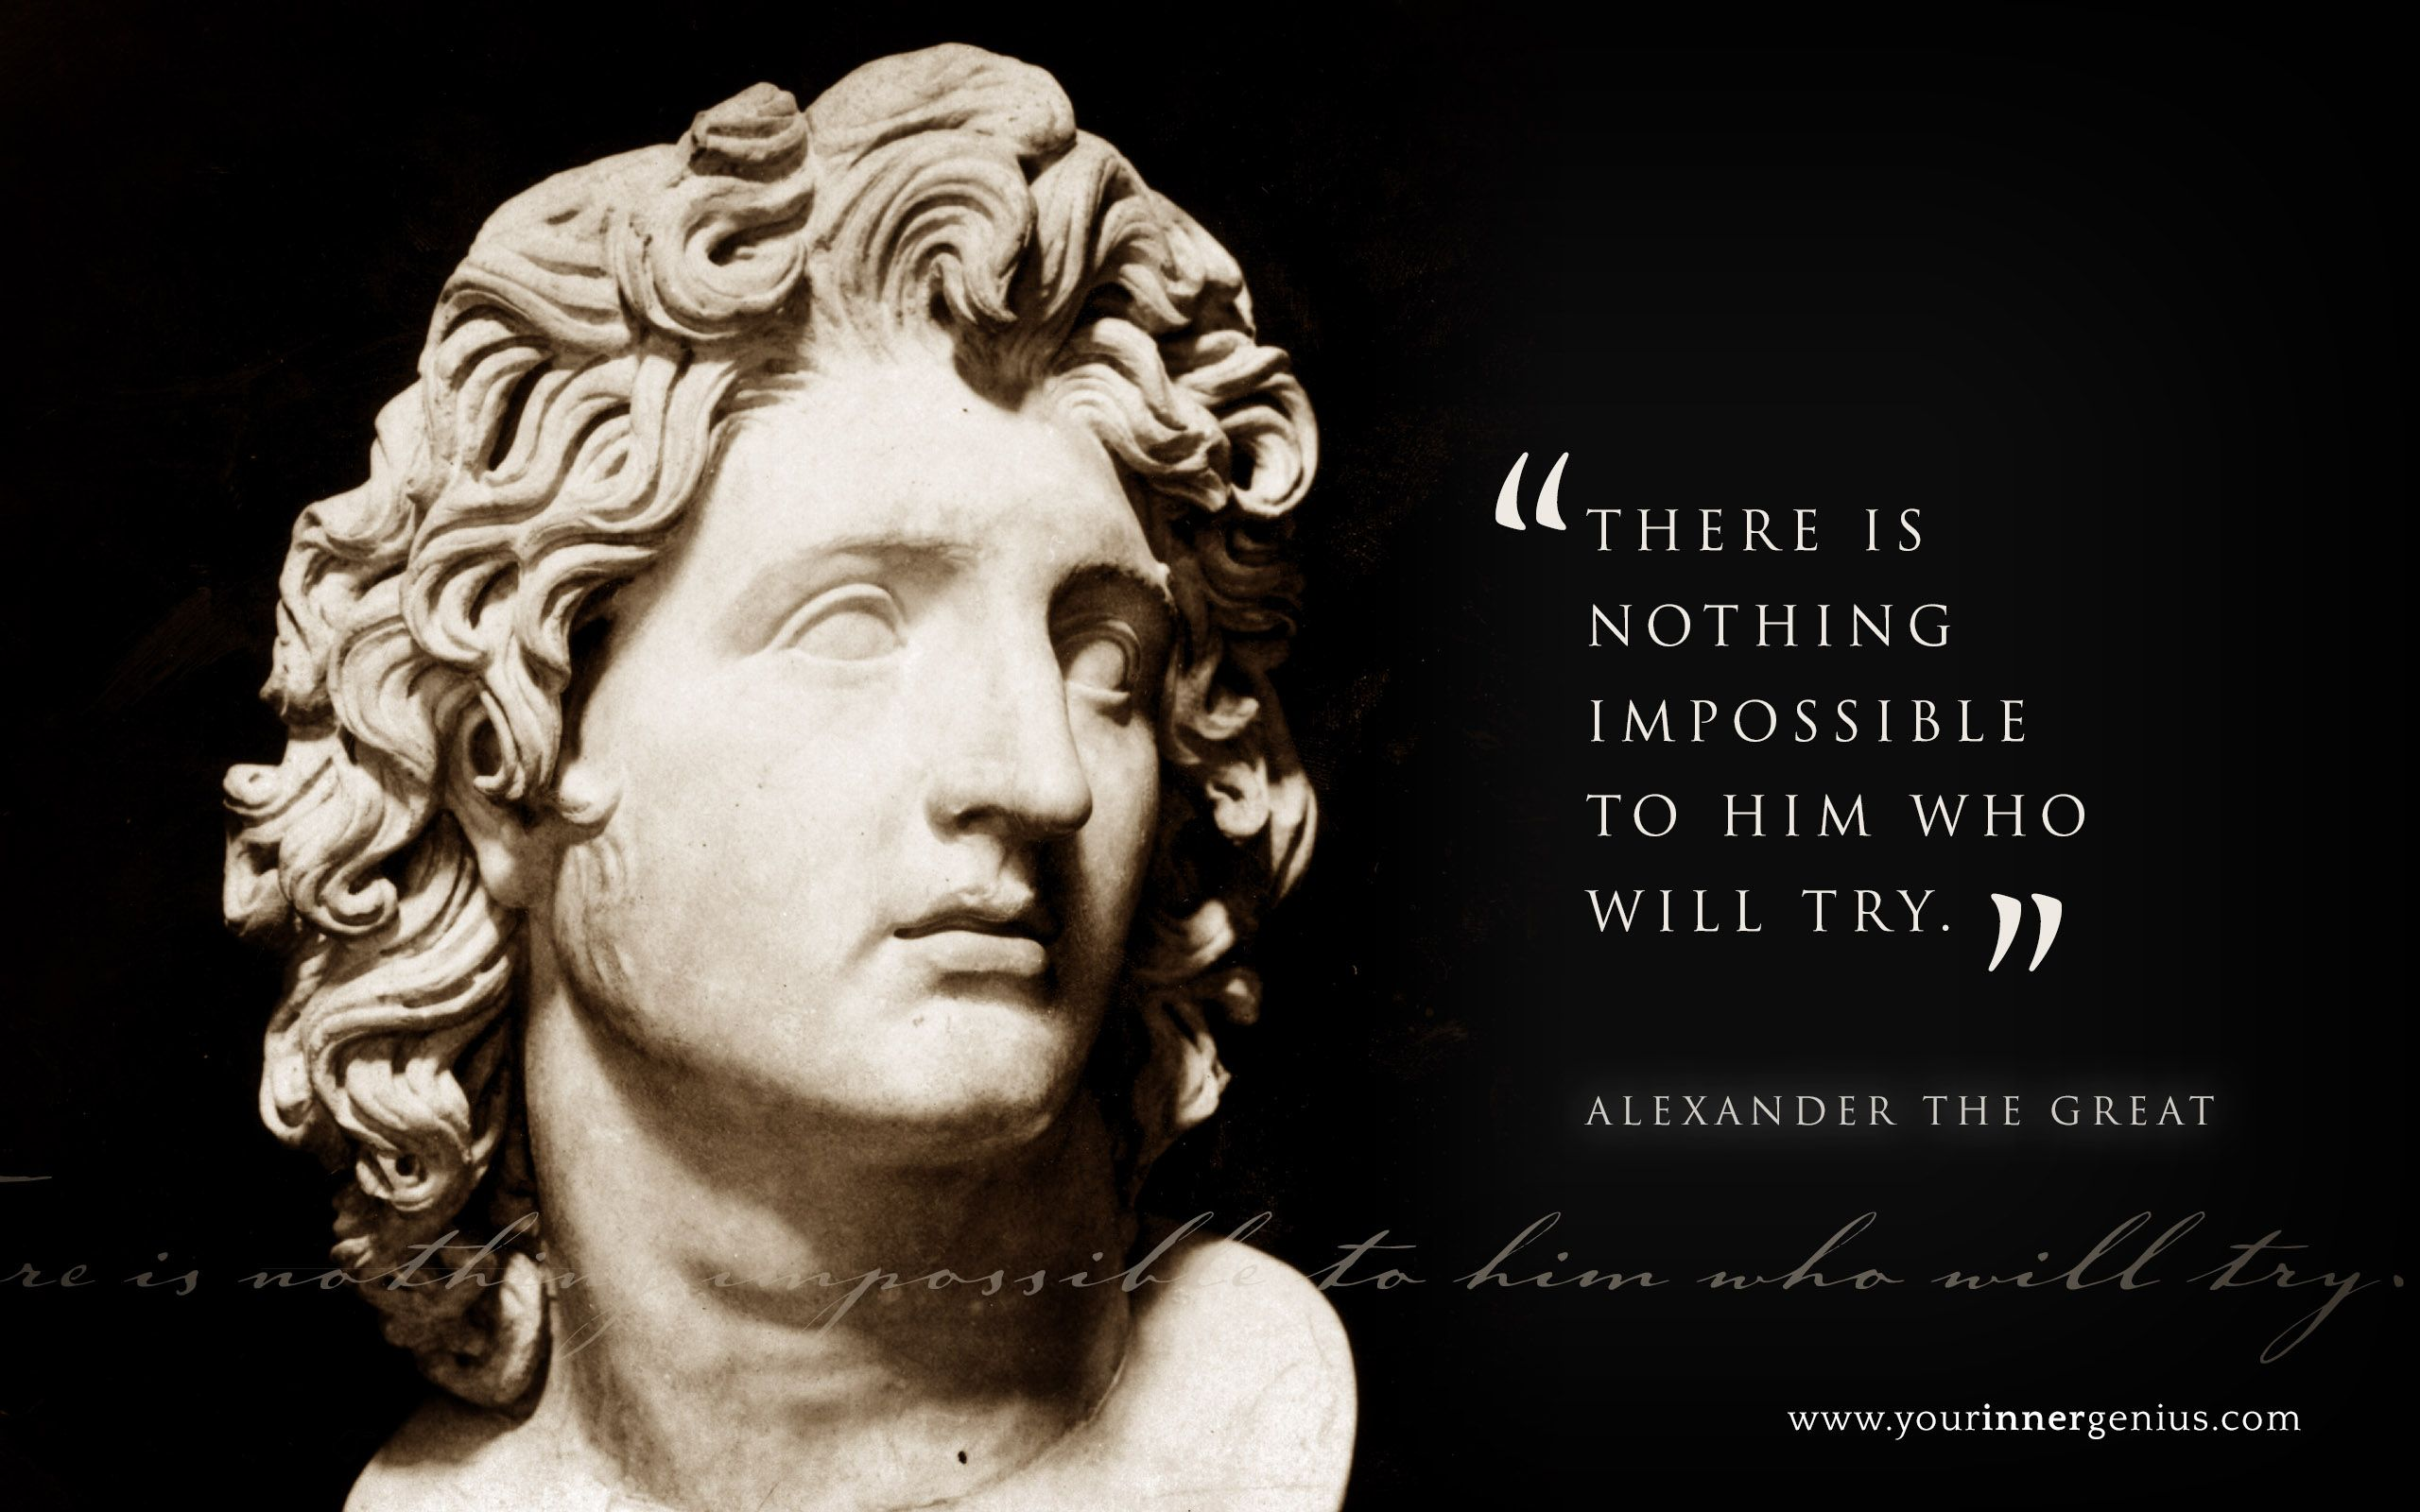 Great Quotes On Pinterest: Alexander The Great On What Is And Isn't Possible. Do You